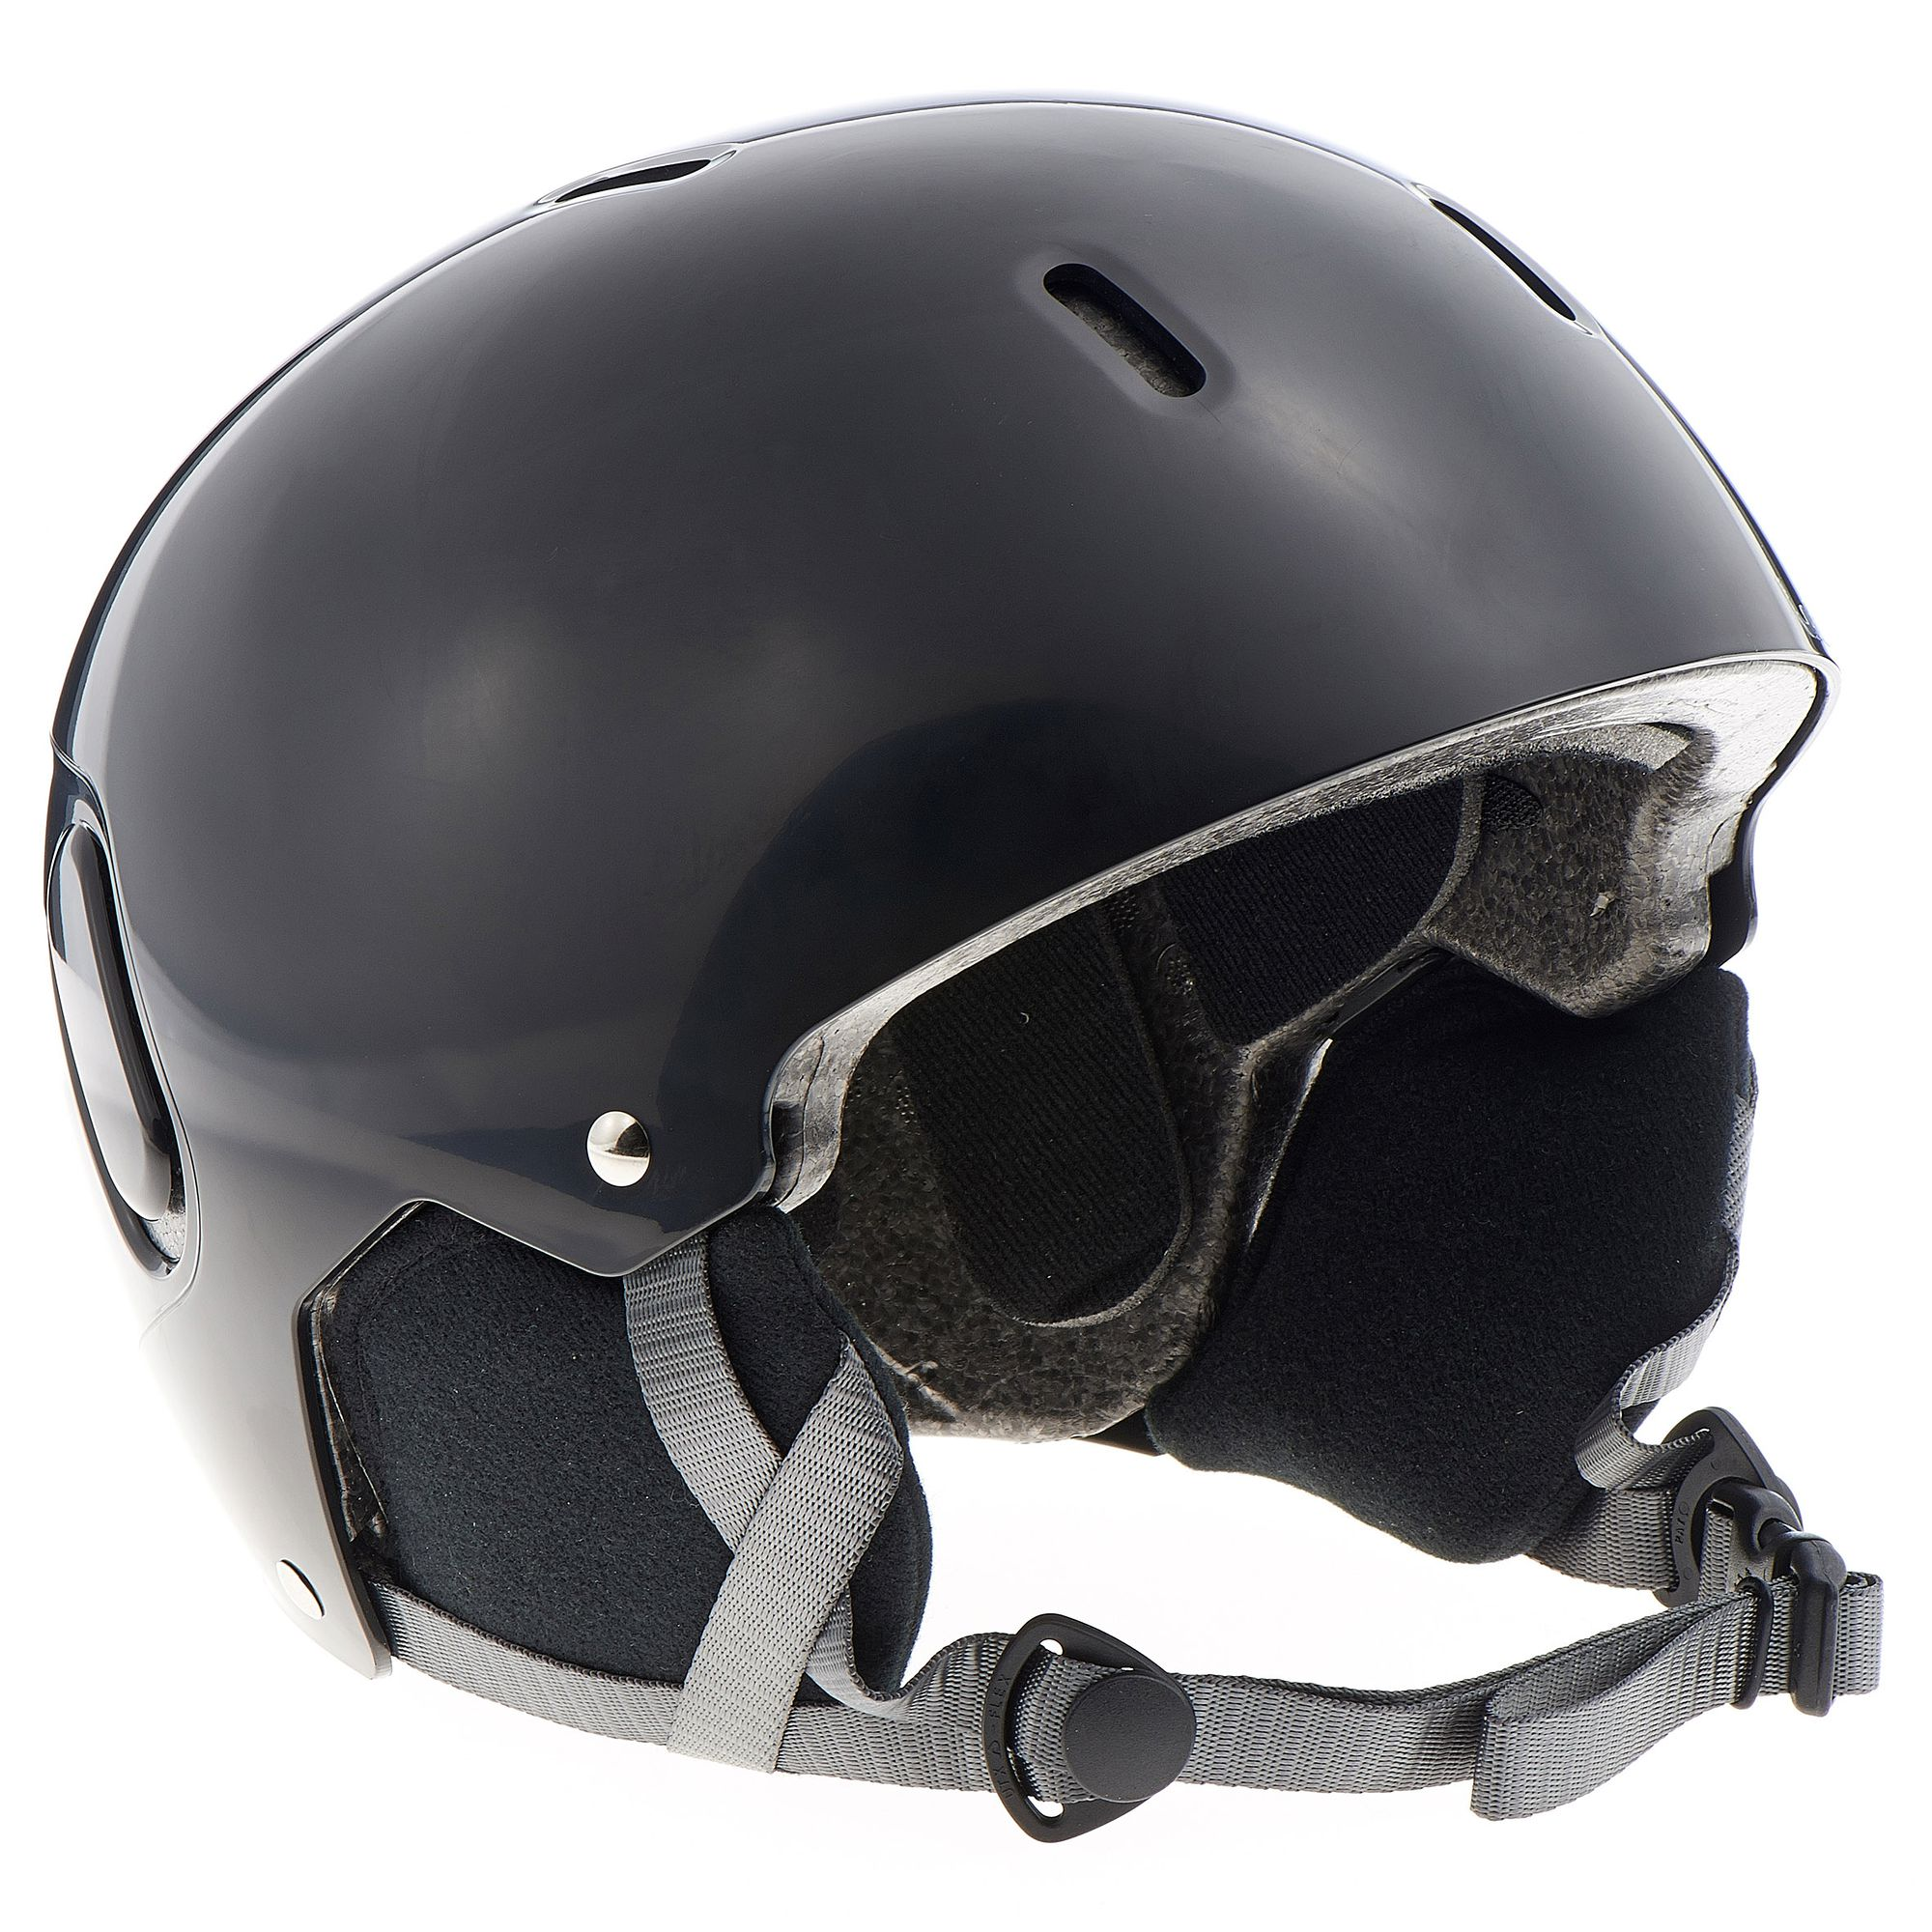 CASQUE DE SKI ET DE SNOWBOARD ADULTE ONE FEEL NOIR